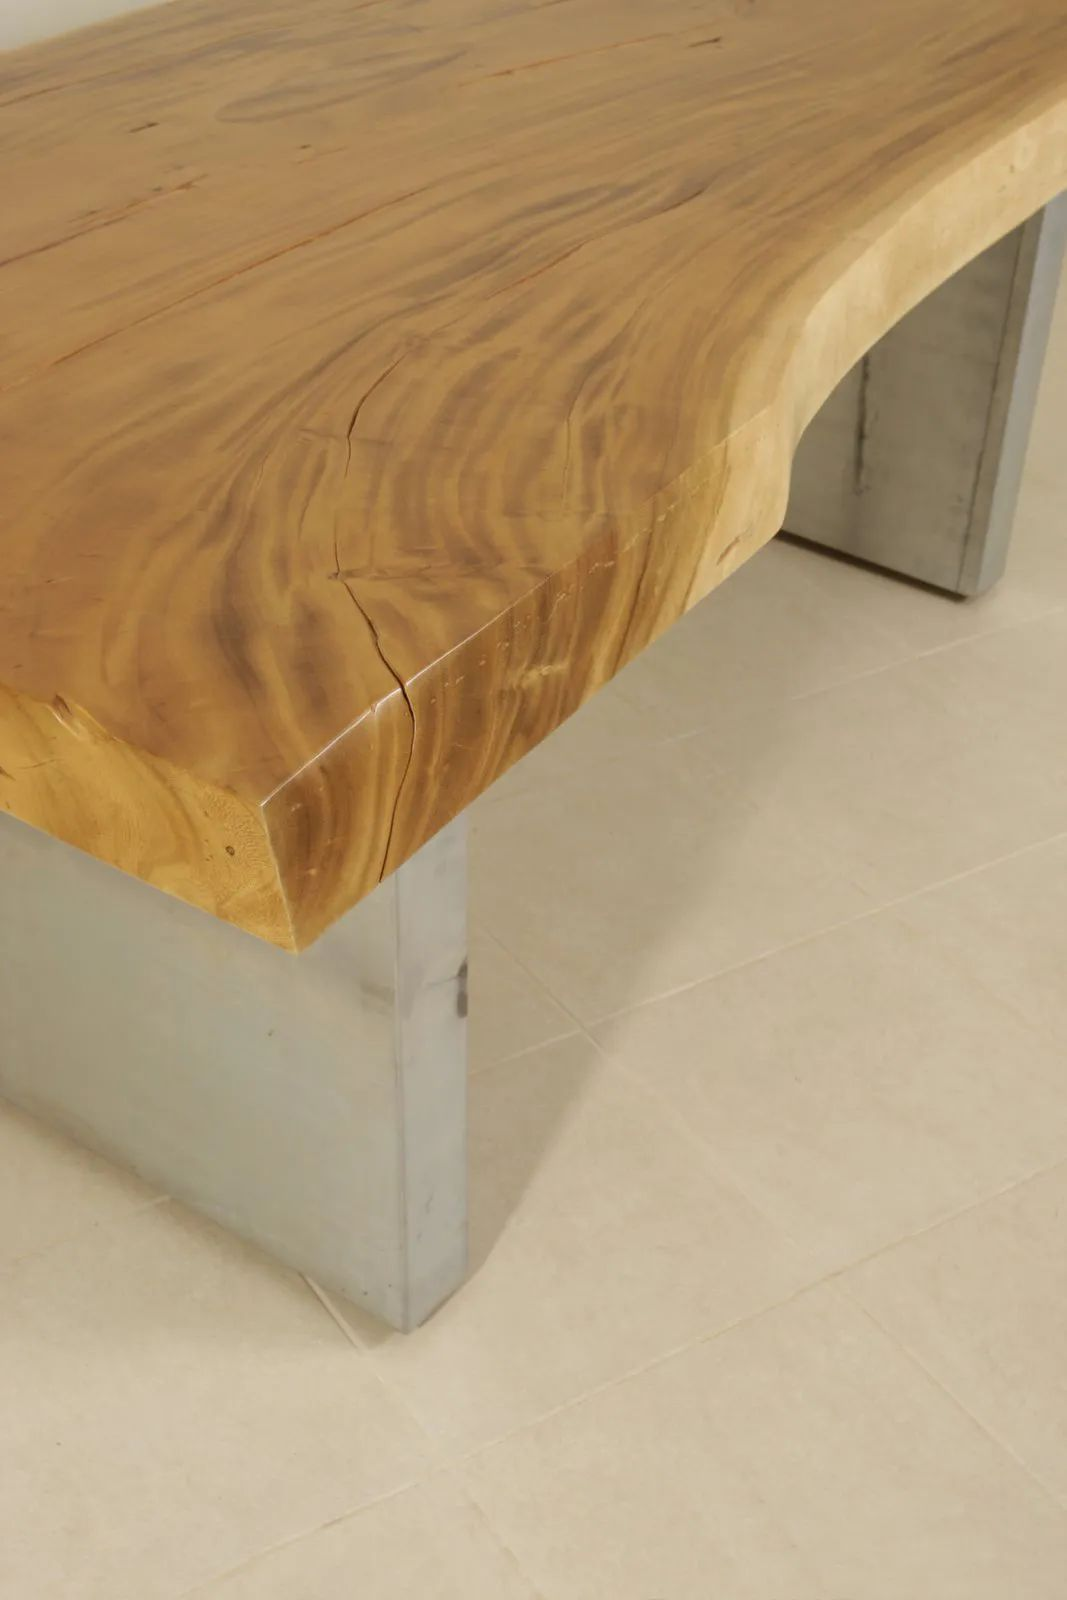 Live edge detail of the top table